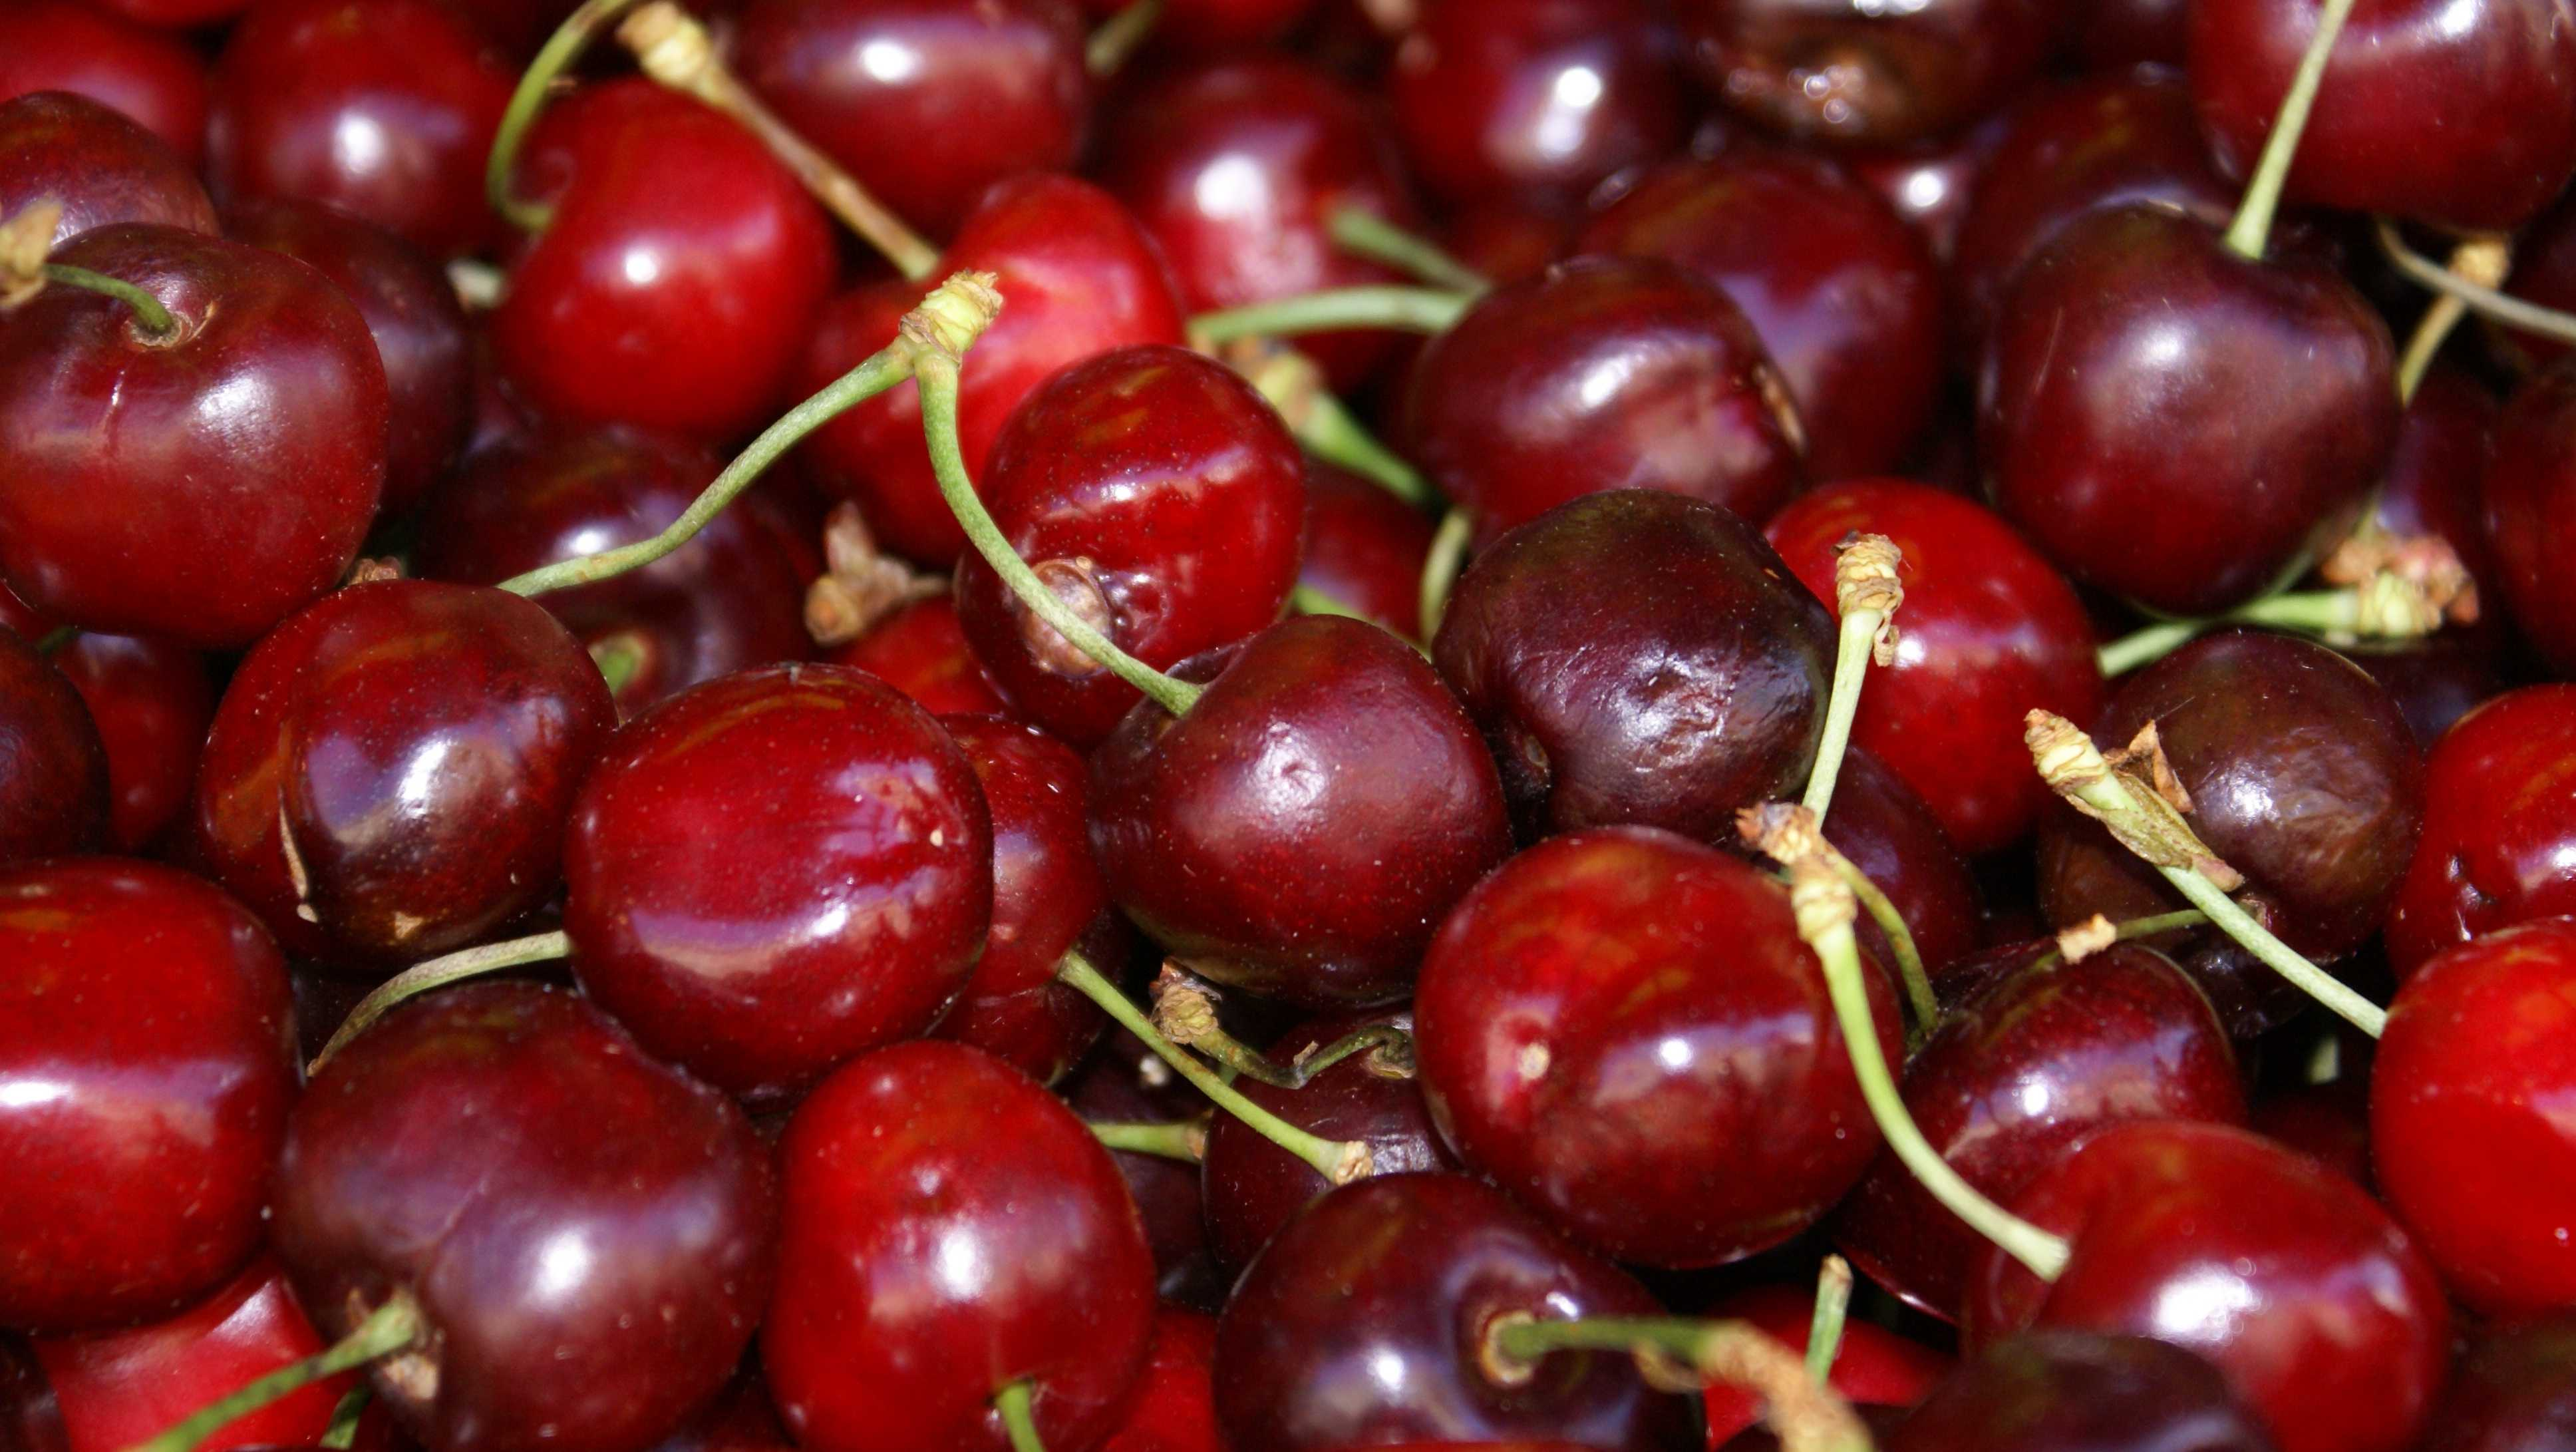 If fresh ones aren't in season, go for cherry juice or the dried variety.